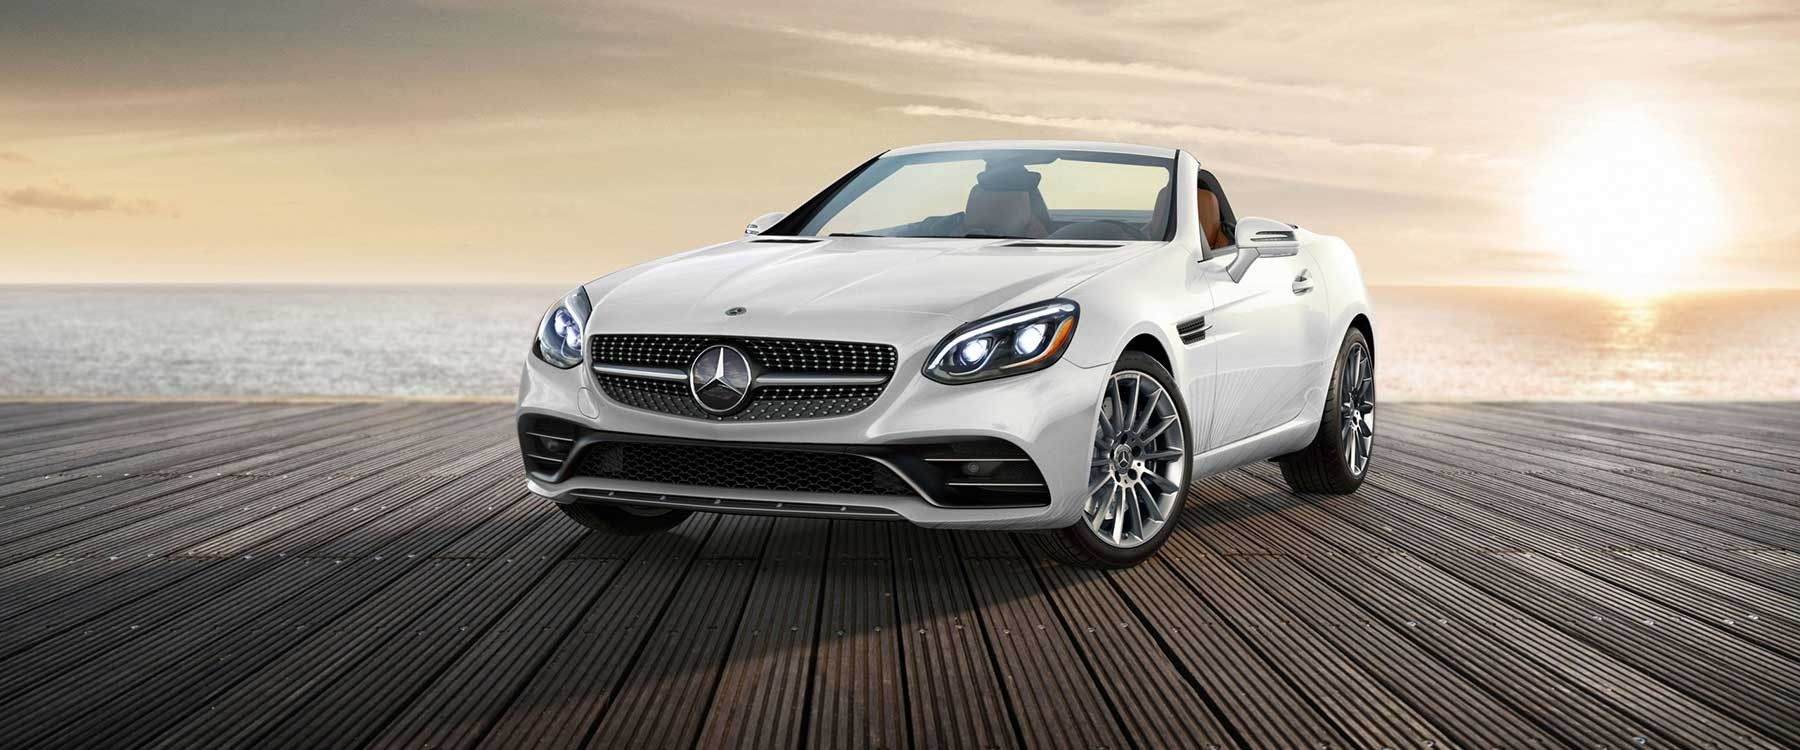 Hit the highway in a 2018 mercedes benz slc 300 roadster for Mercedes benz henderson